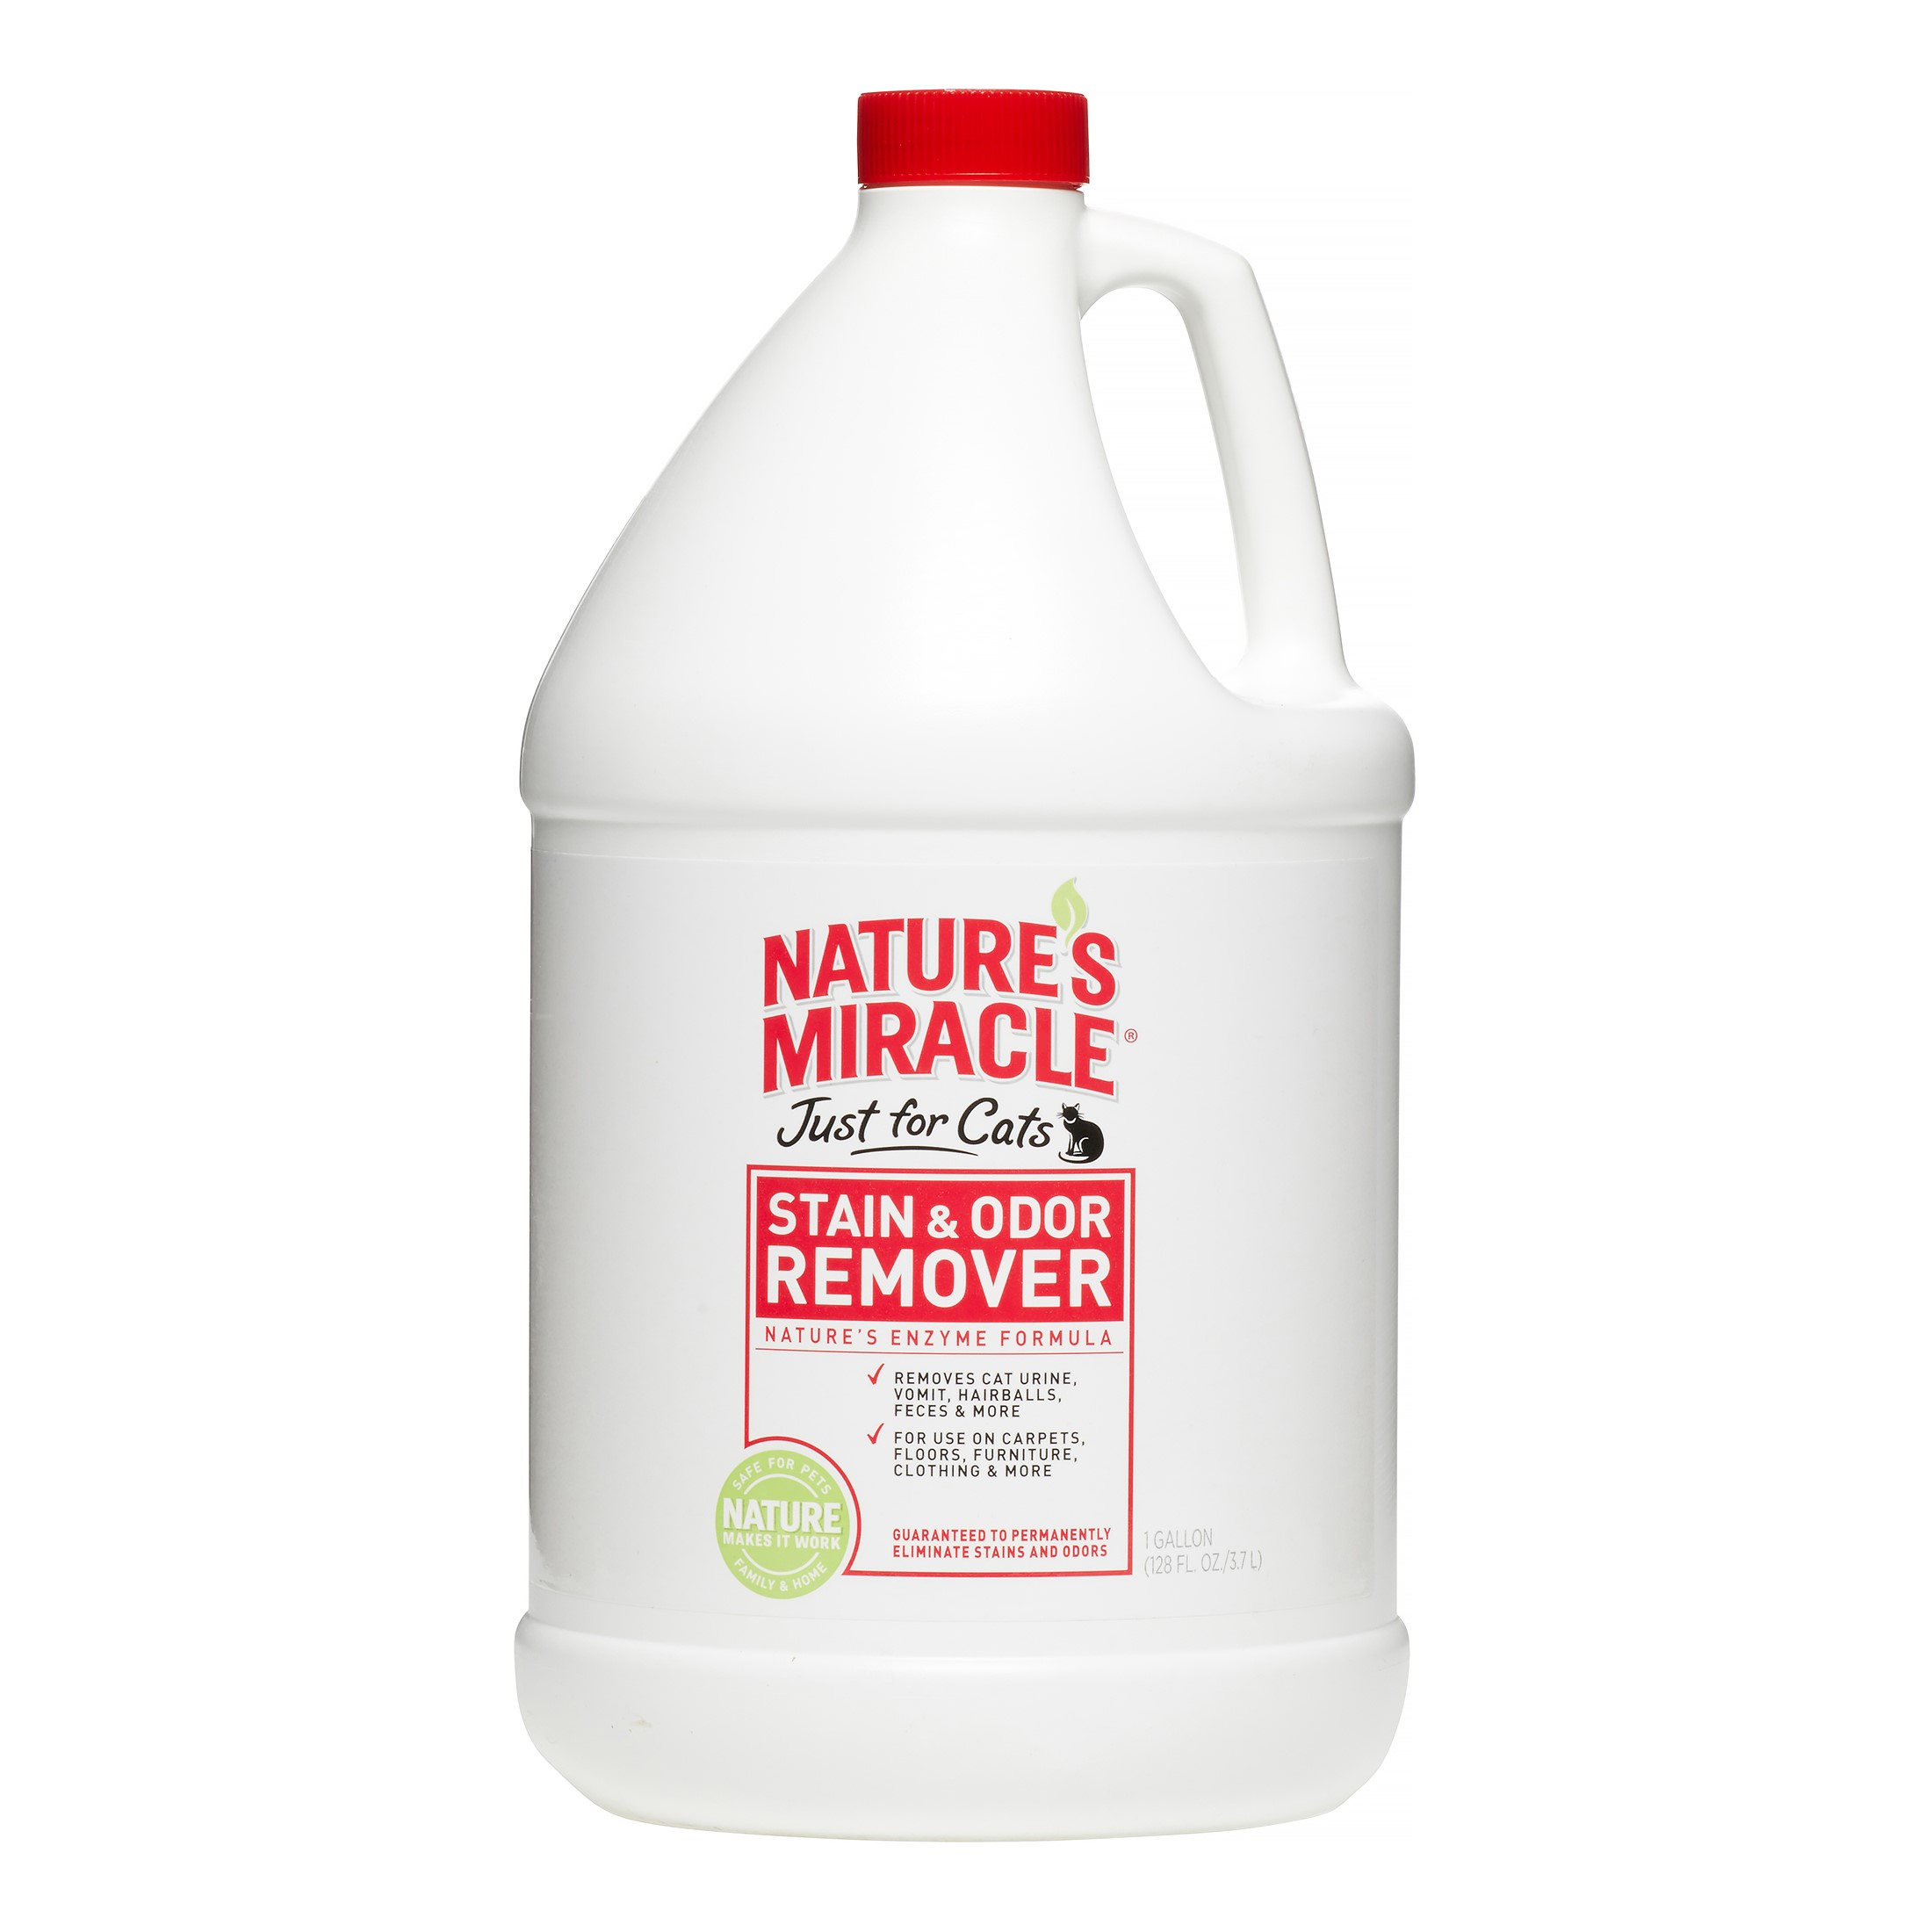 Spectrum Brands Natures Miracle Just For Cats Stain & Odor Remover, 1 gal